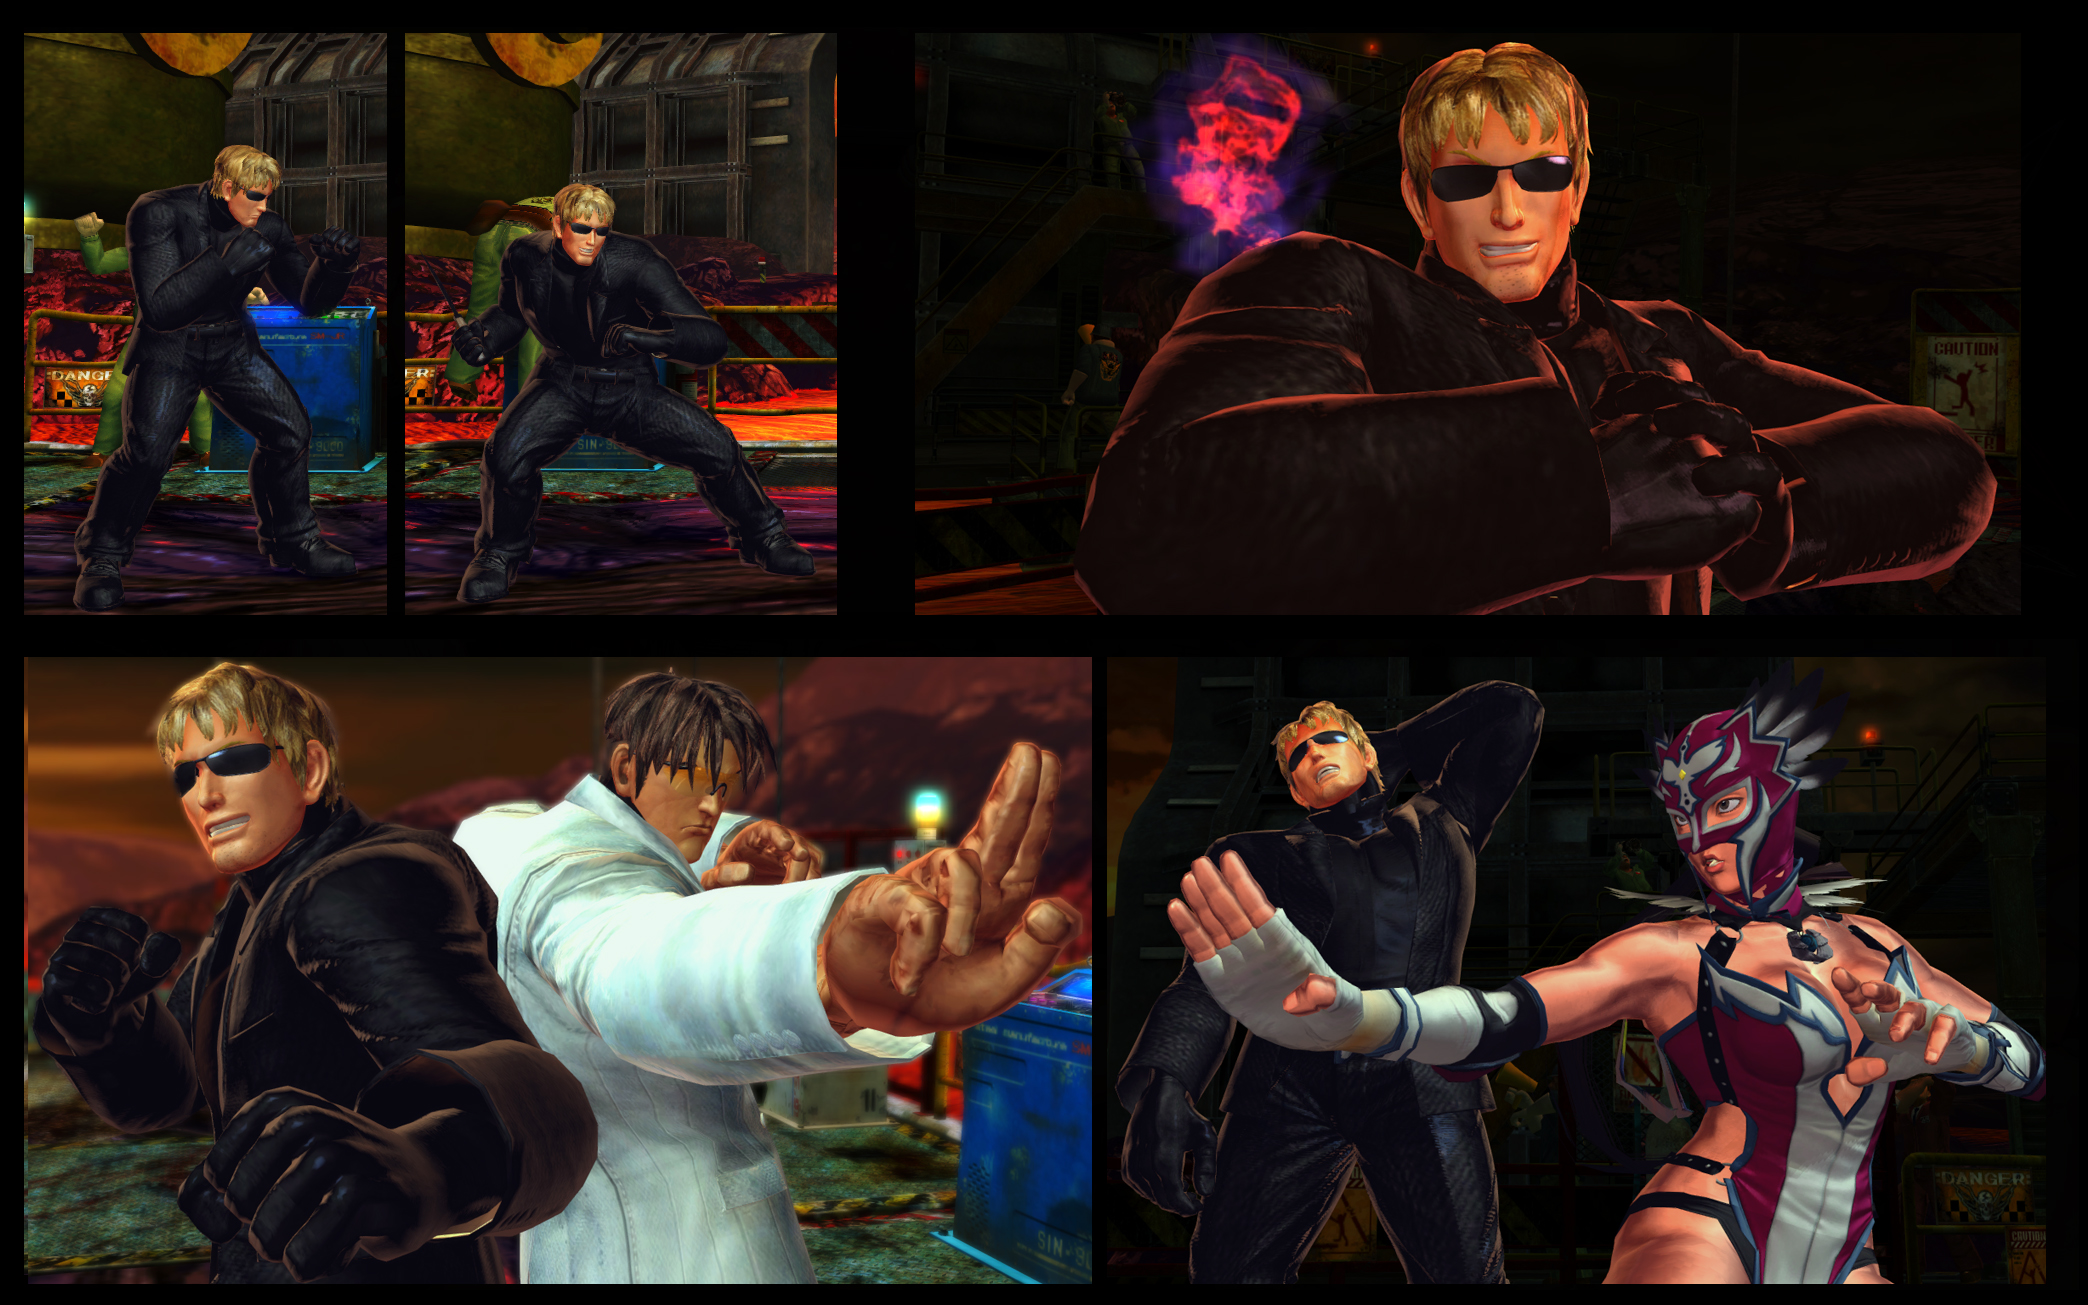 SF X TEKKEN Cody as Albert  Wesker from RE 4 by monkeygigabuster